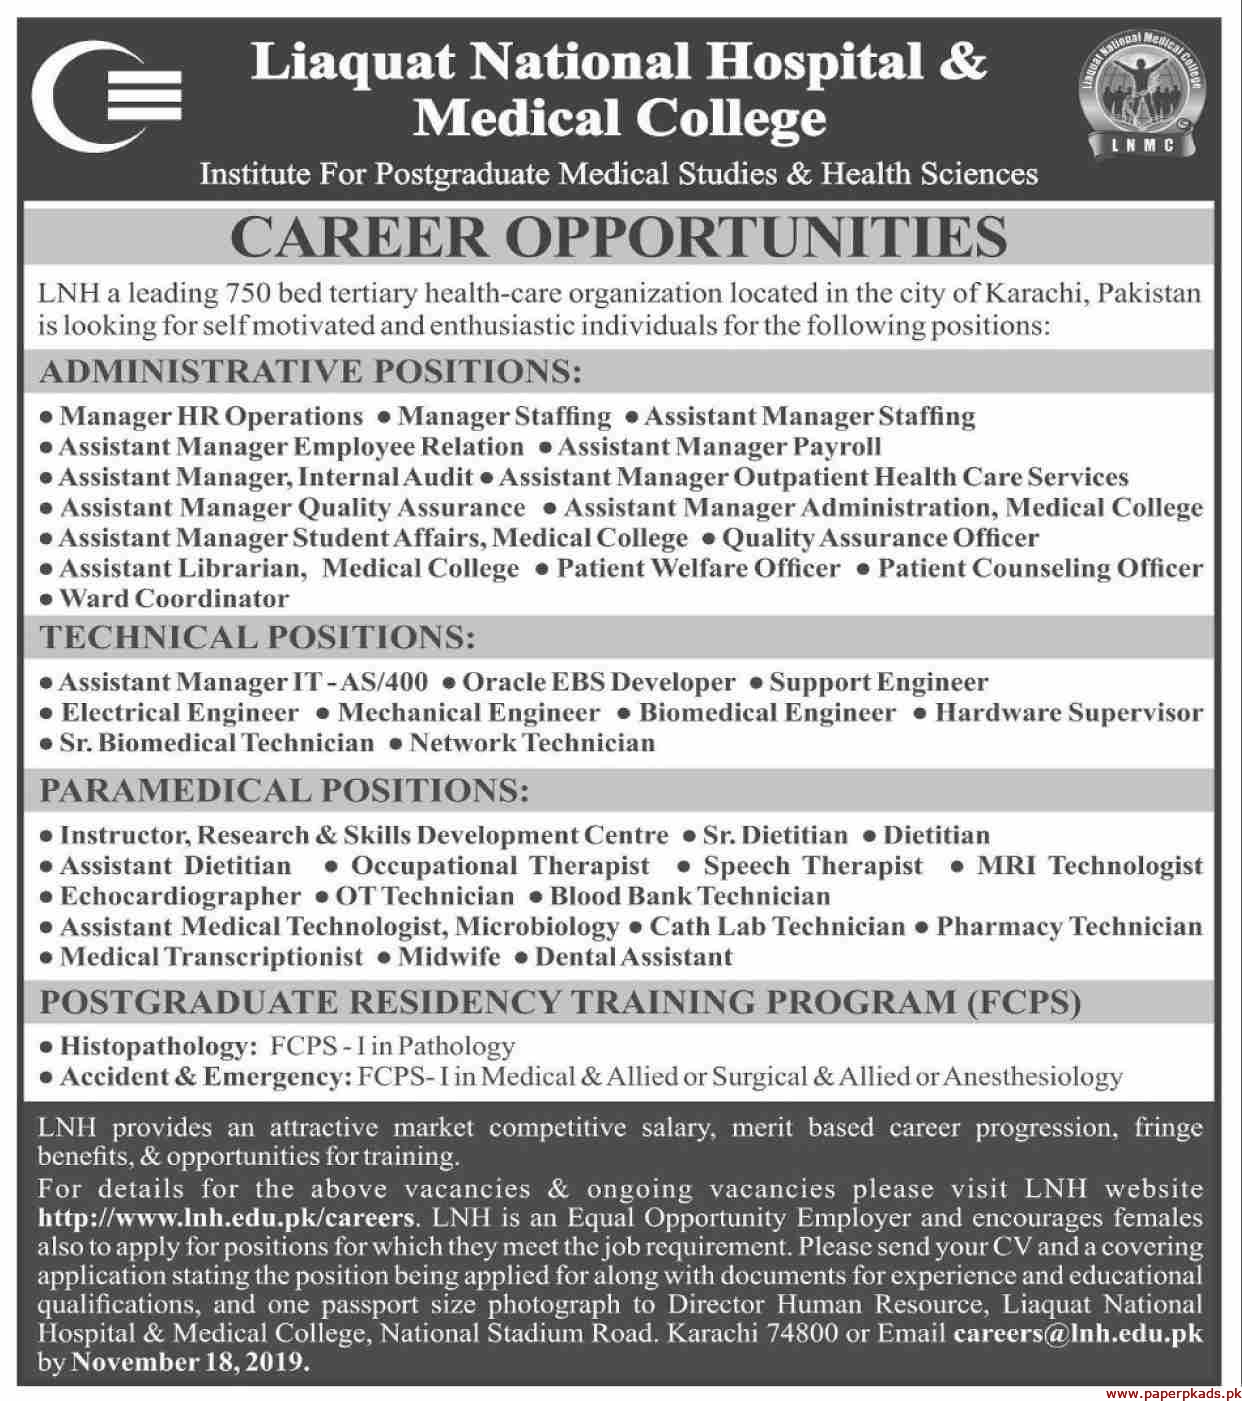 Liaquat National Hospital & Medical LNM College Jobs 2019 Latest